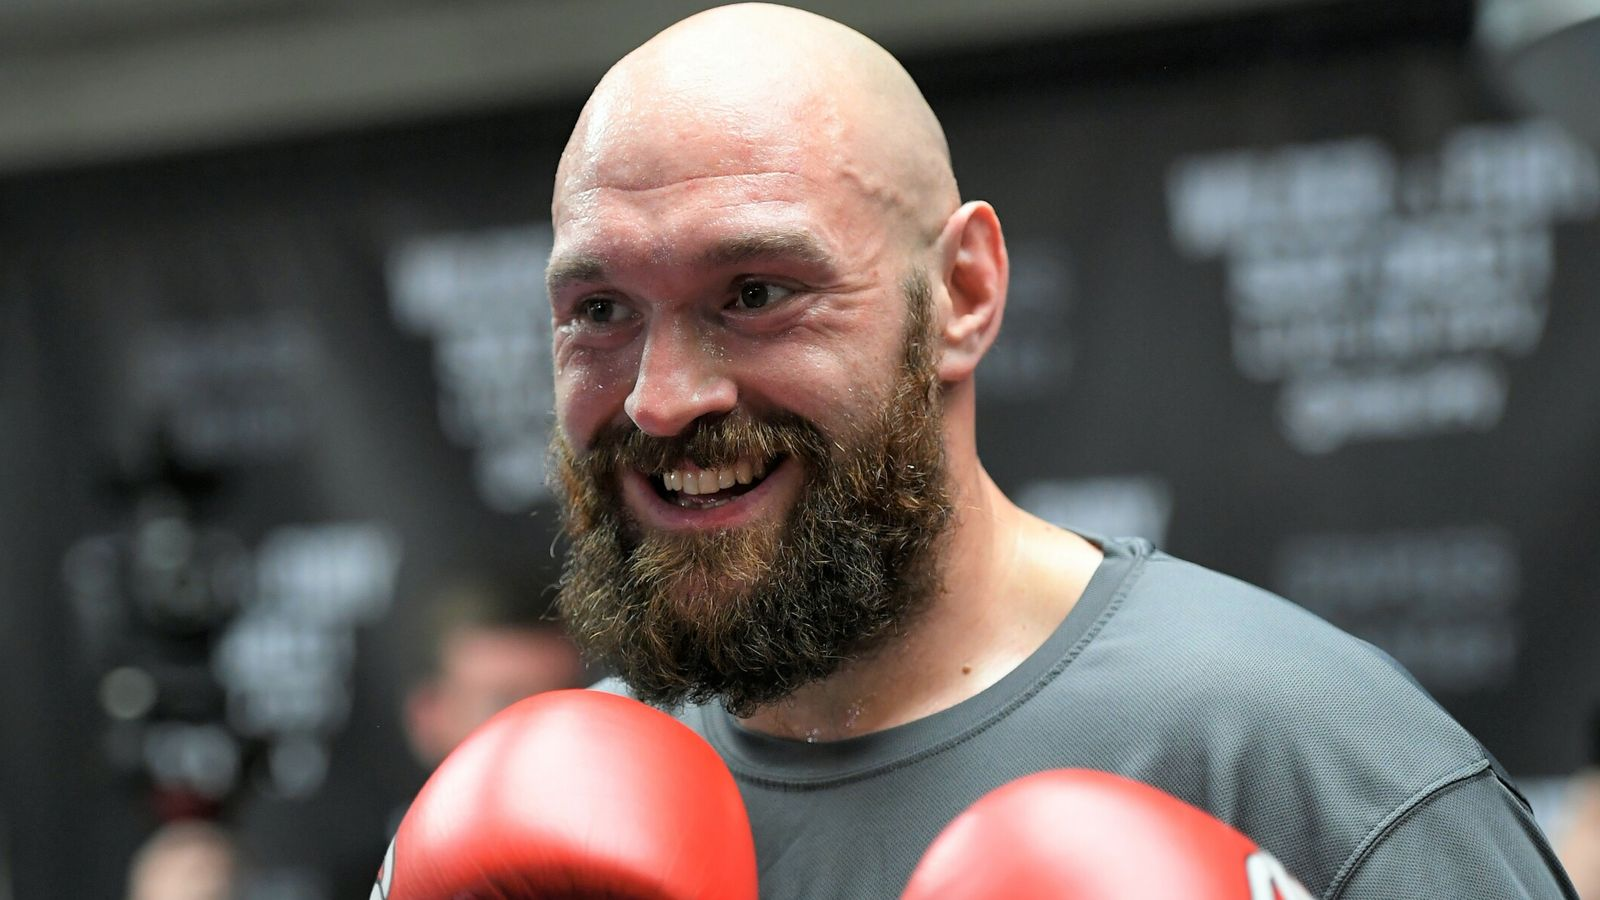 Tyson Fury: Inside story of a week at the champion's home featuring golf, lots of eating and a wedding